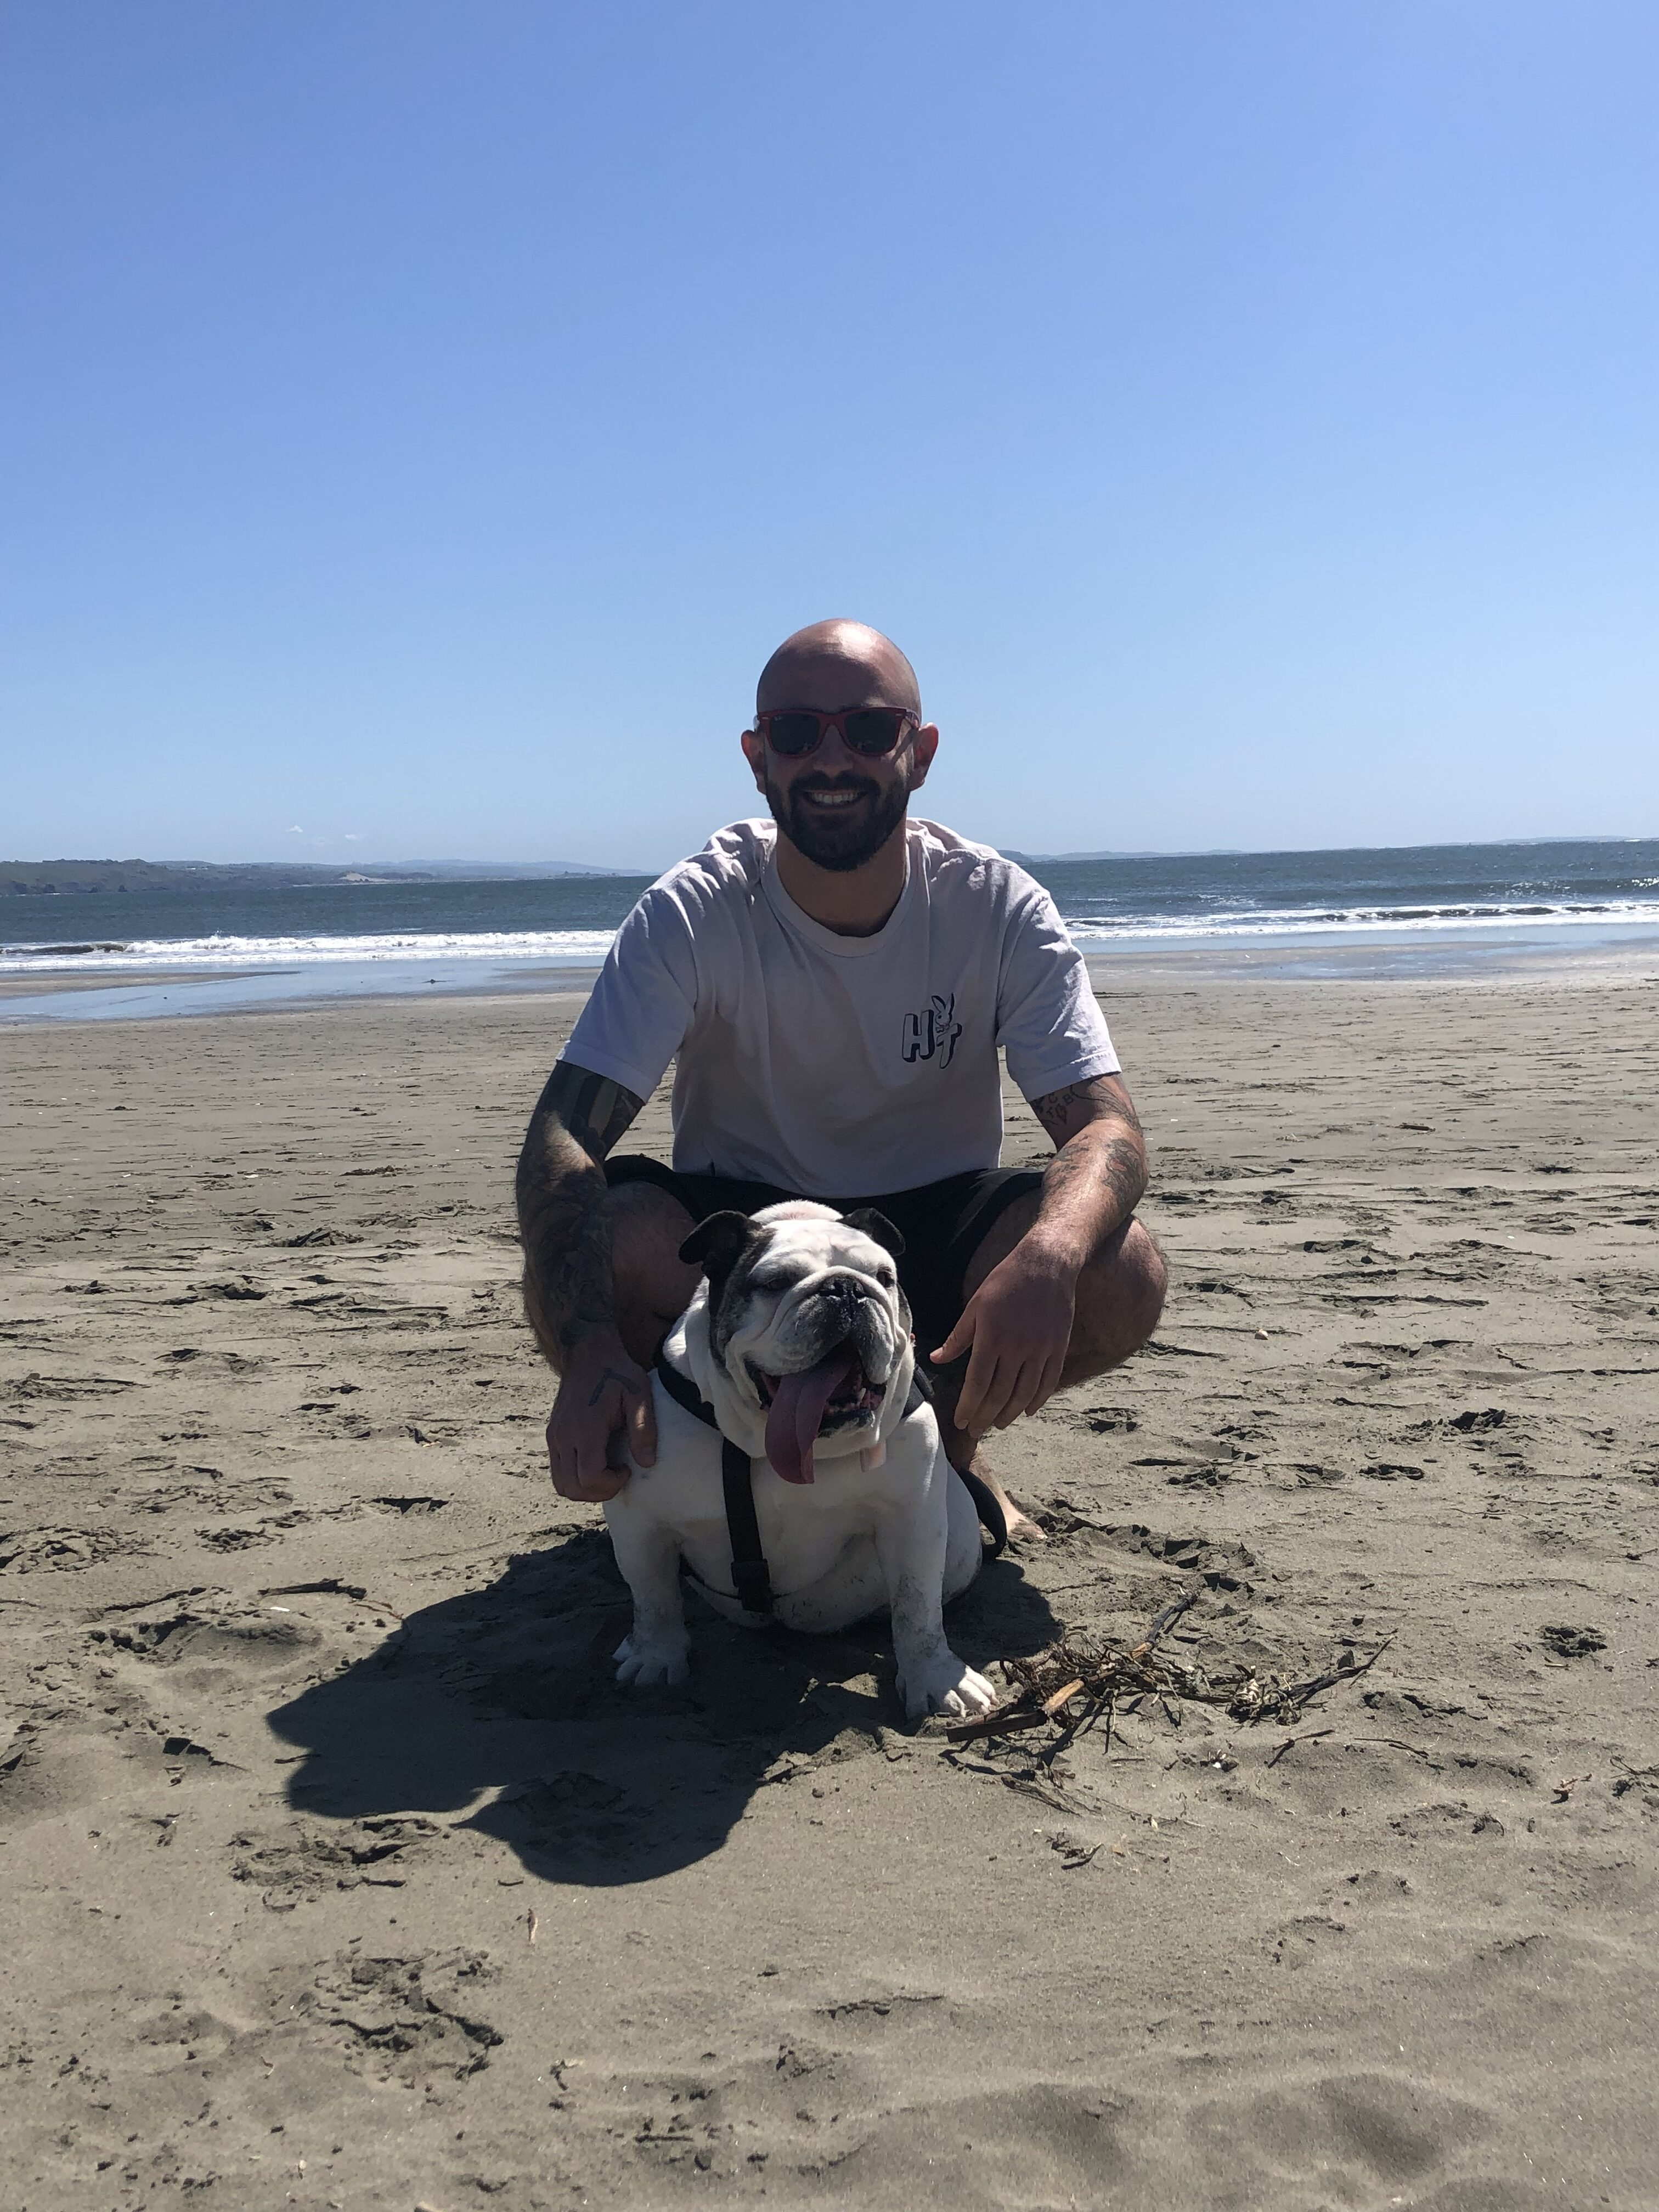 Alex Tillisch on the beach with his dog after more than one year sober